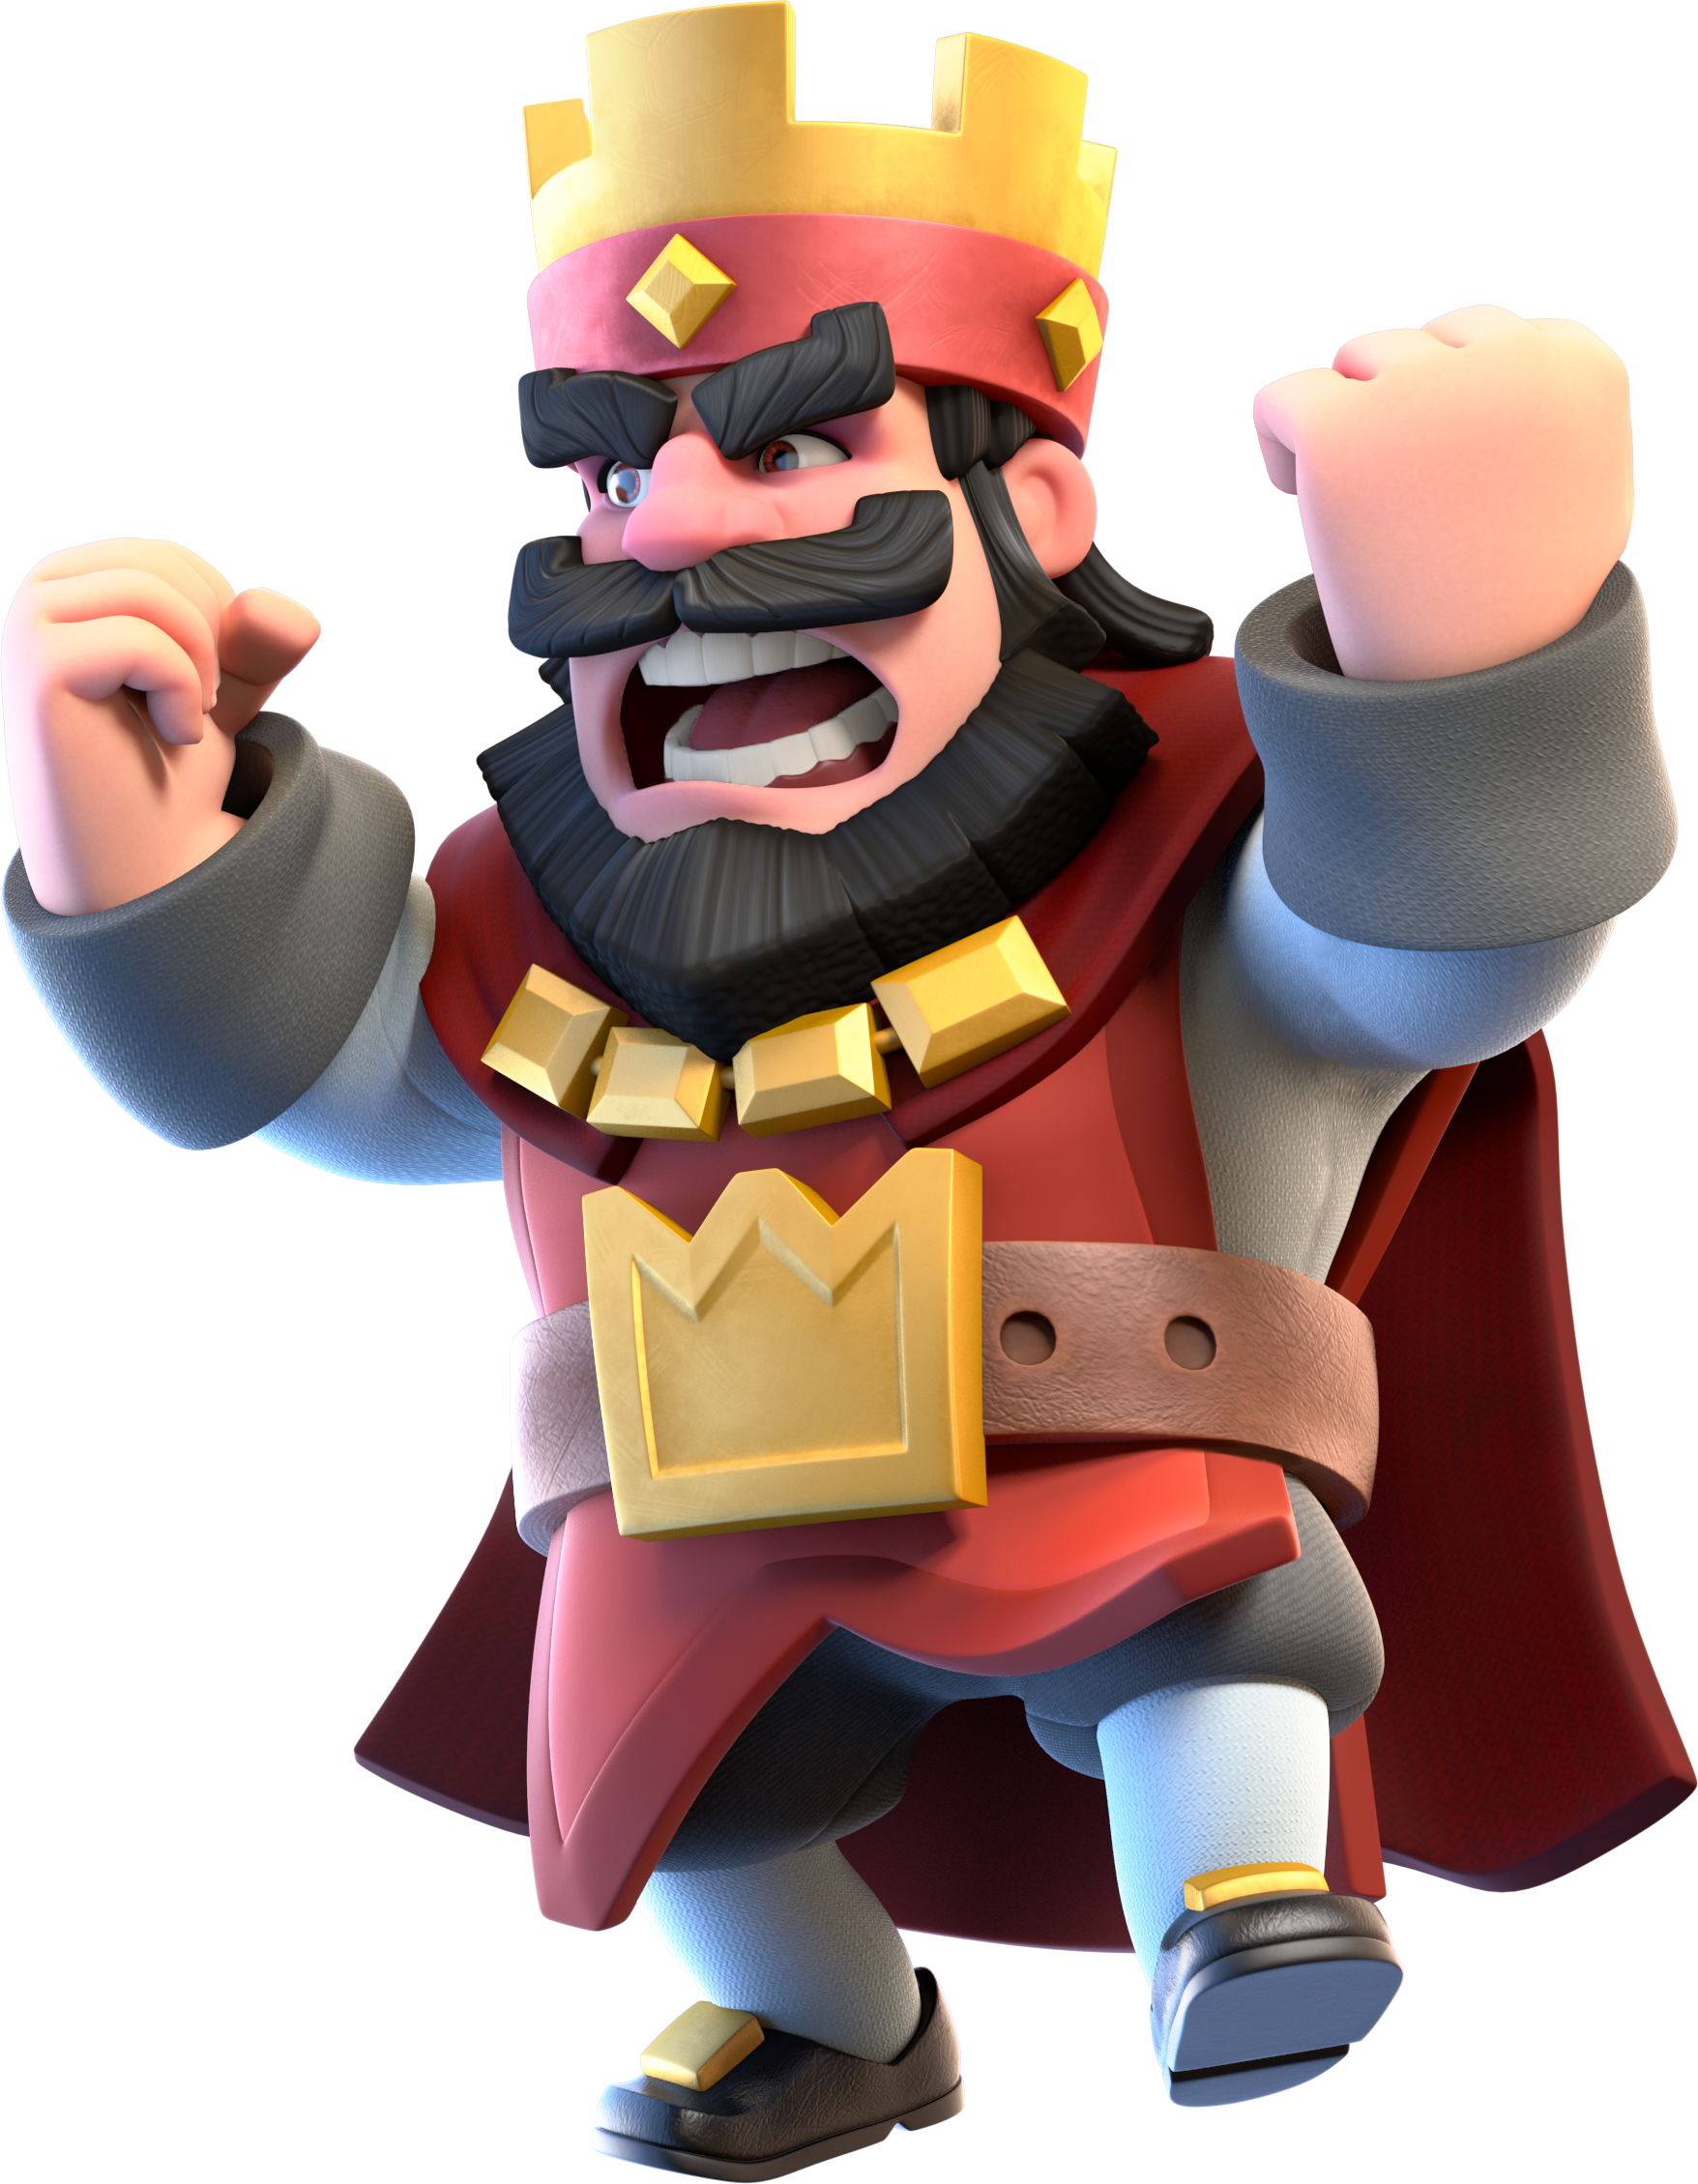 Clash royale king png. Image red angry wiki